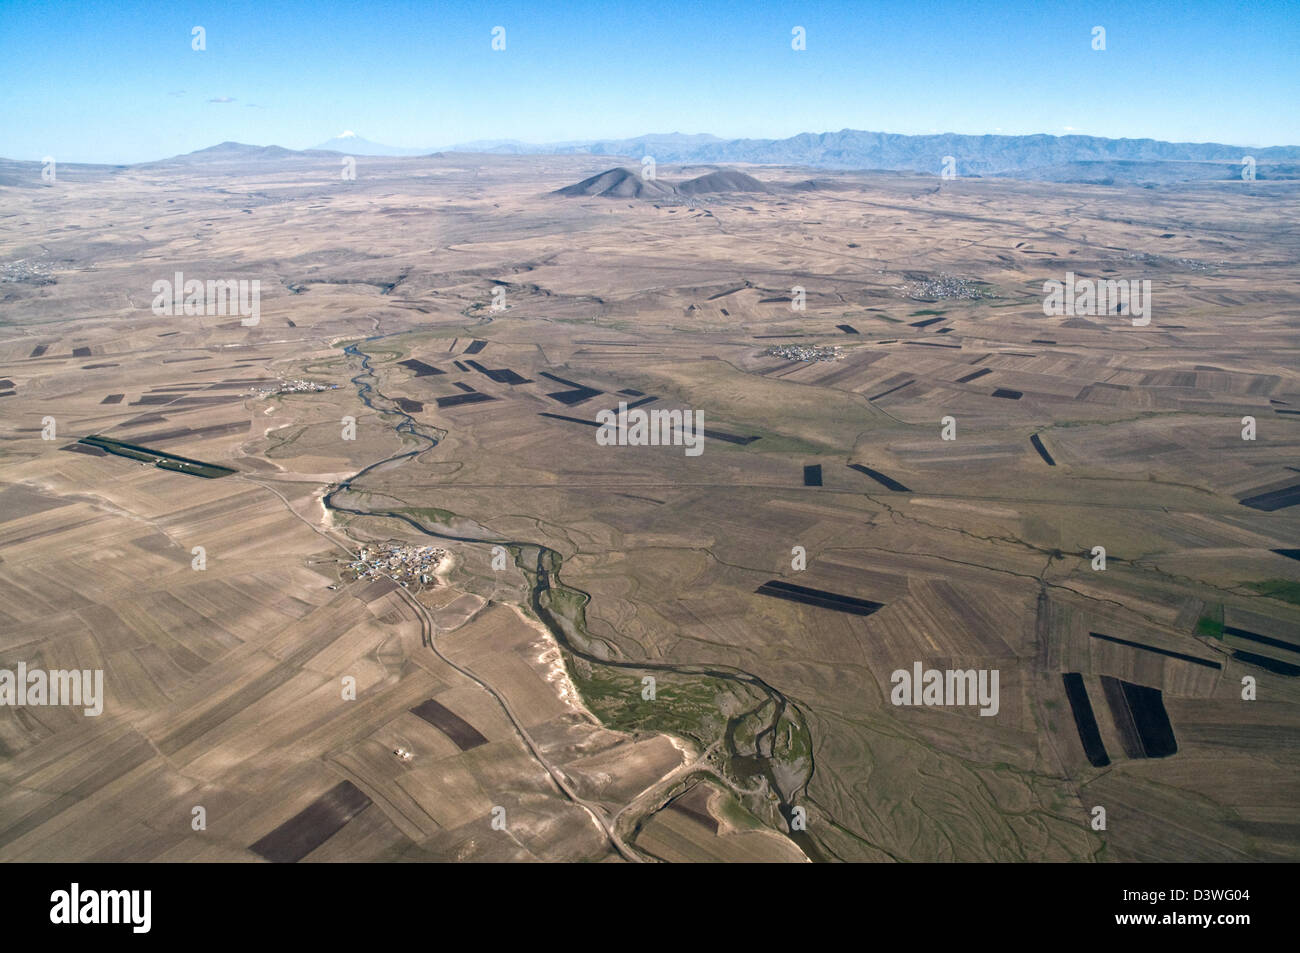 Aerial view of the Turkish steppe lands near the city of Kars and the Turkey-Armenia border. Mt. Ararat is seen - Stock Image